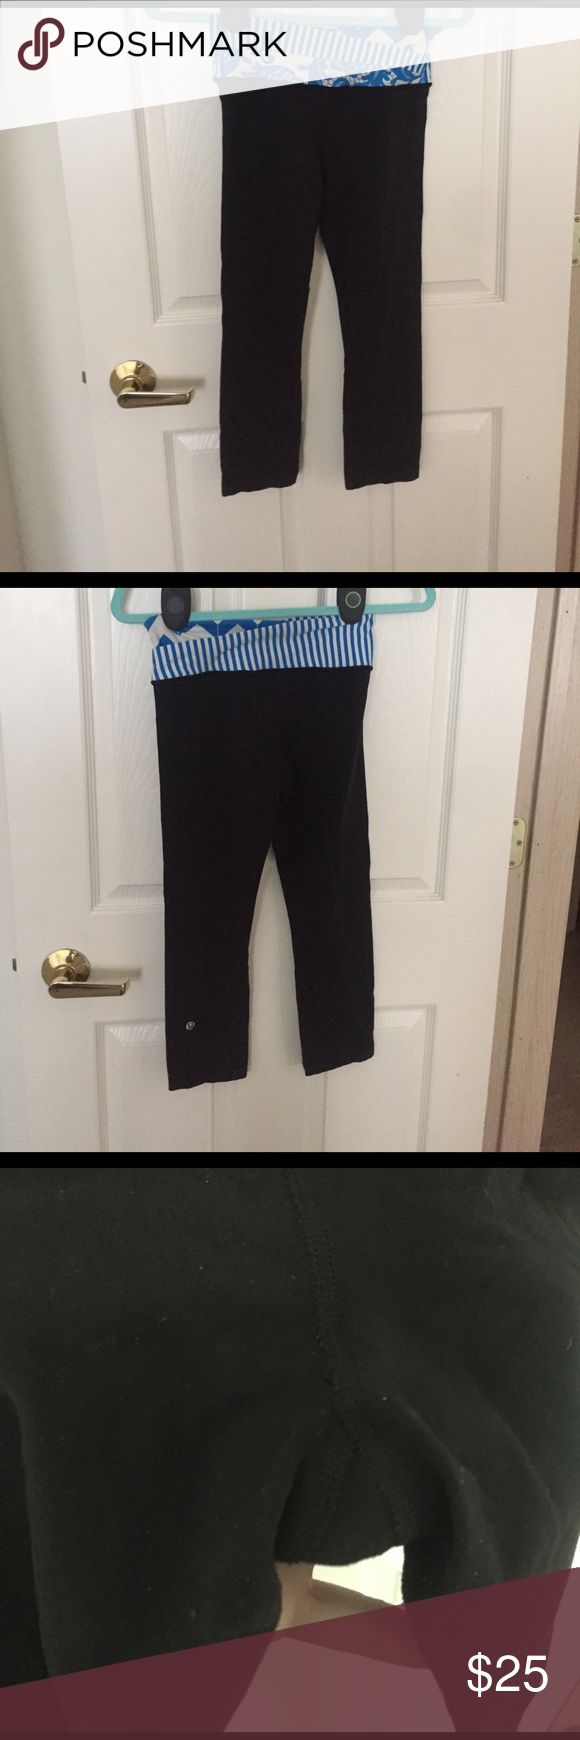 lululemon 7/8 crop leggings lululemon 7/8 crop leggings! In good condition has pilling but no holes. Price reflects condition but still wonderful :-)! The have been nicely wash and cleaned with tide ready for another workout. They no longer fit me after having kids and are looking for a new loving home lululemon athletica Pants Leggings